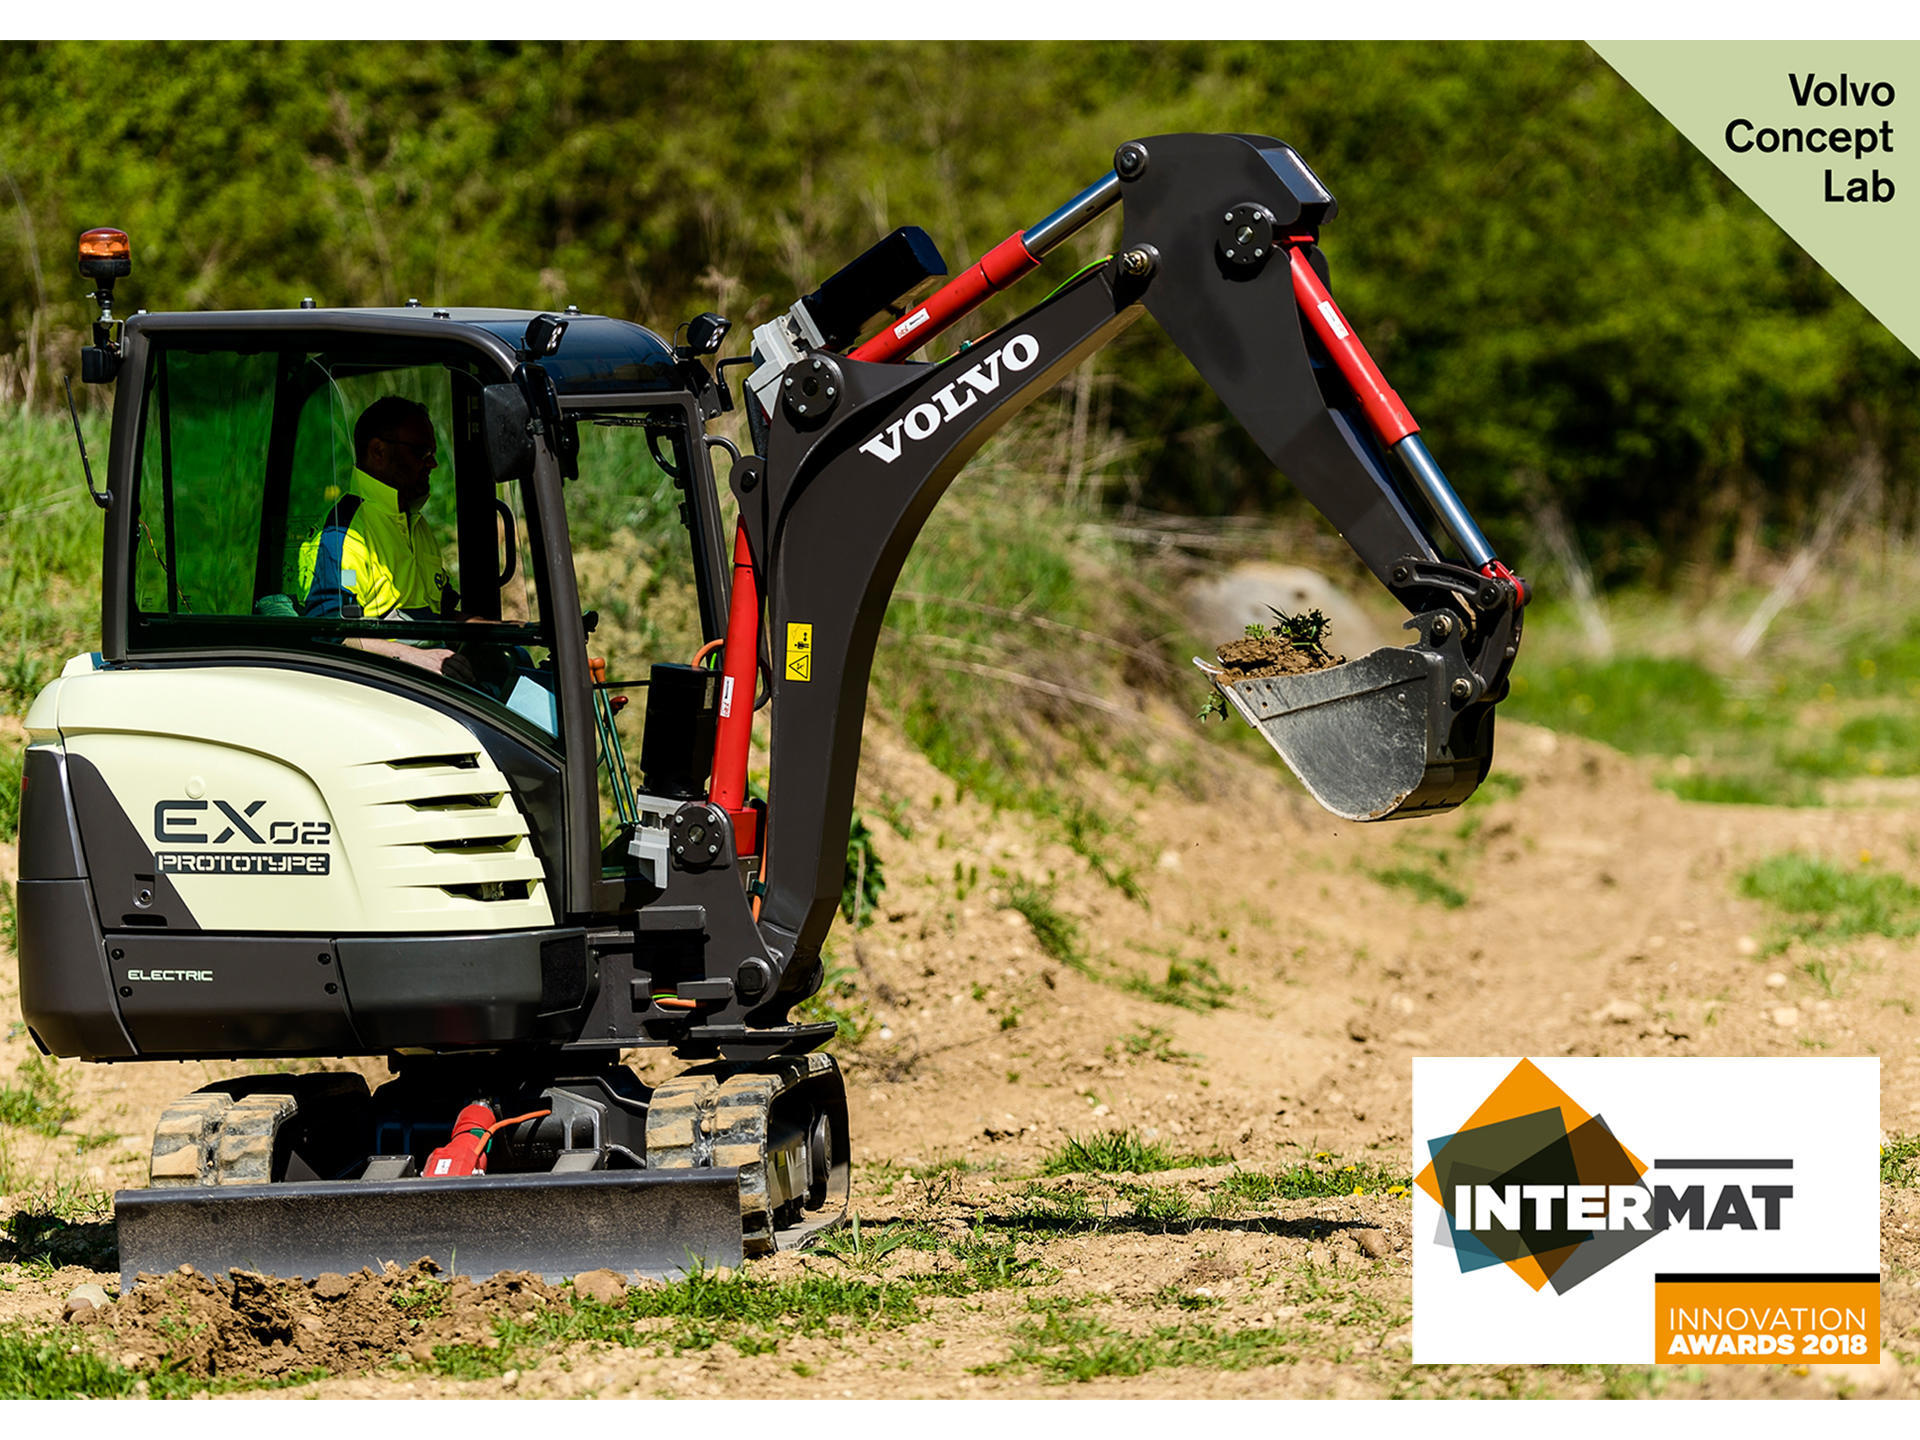 volvo-ce-fully-electric-compact-excavator-prototype-wins-intermat-innovation-award-03-1920x1440